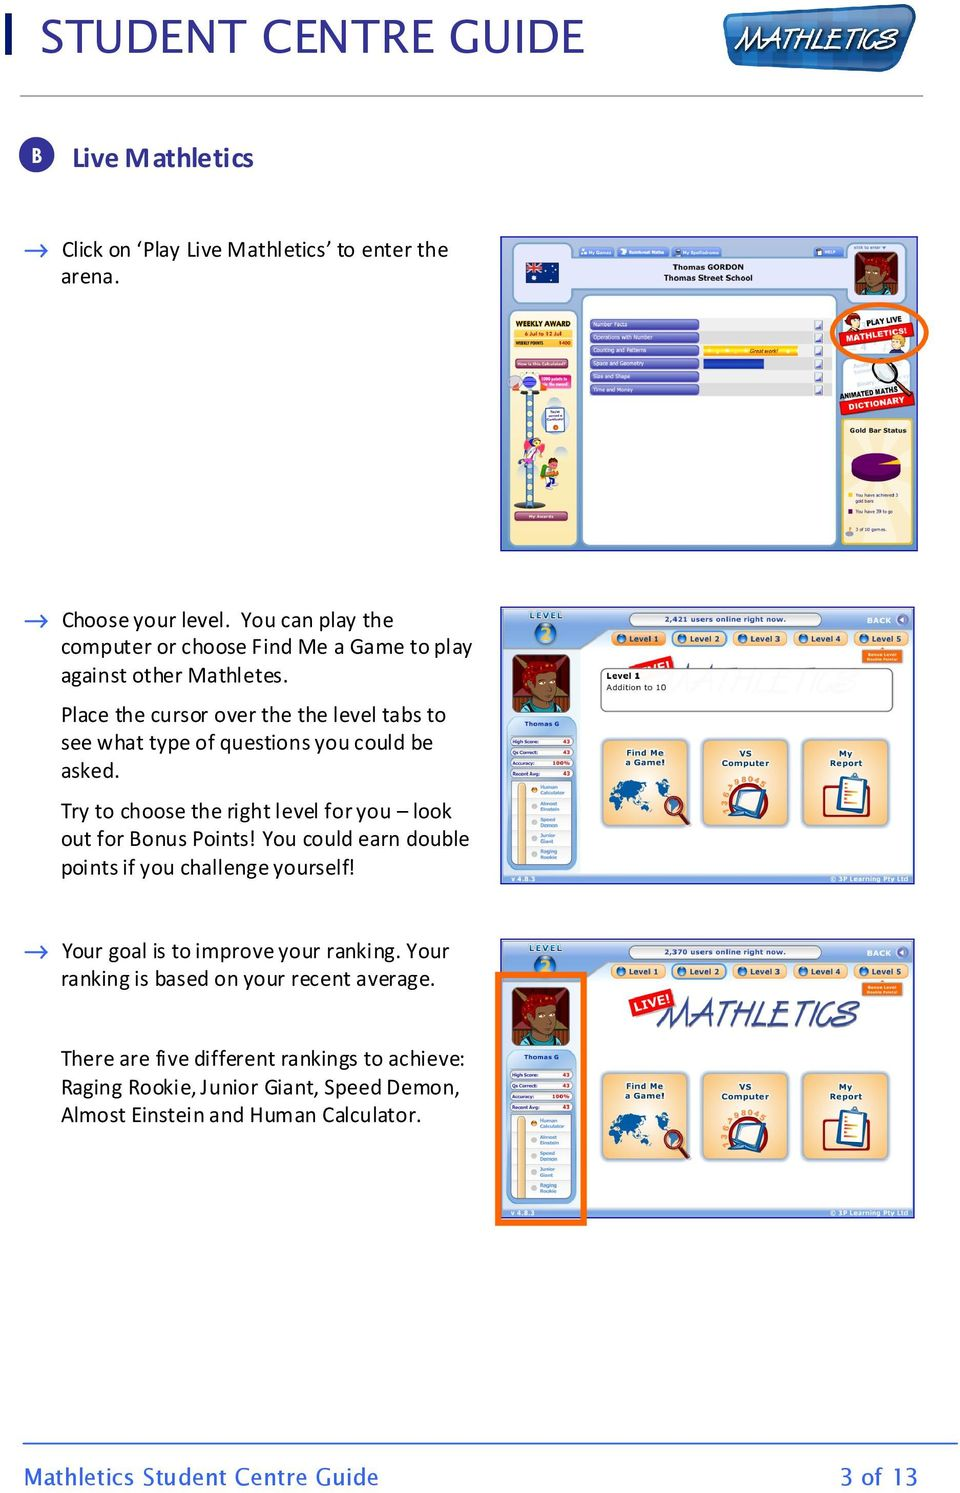 STUDENT CENTRE GUIDE. Welcome to the Mathletics Student Centre ...